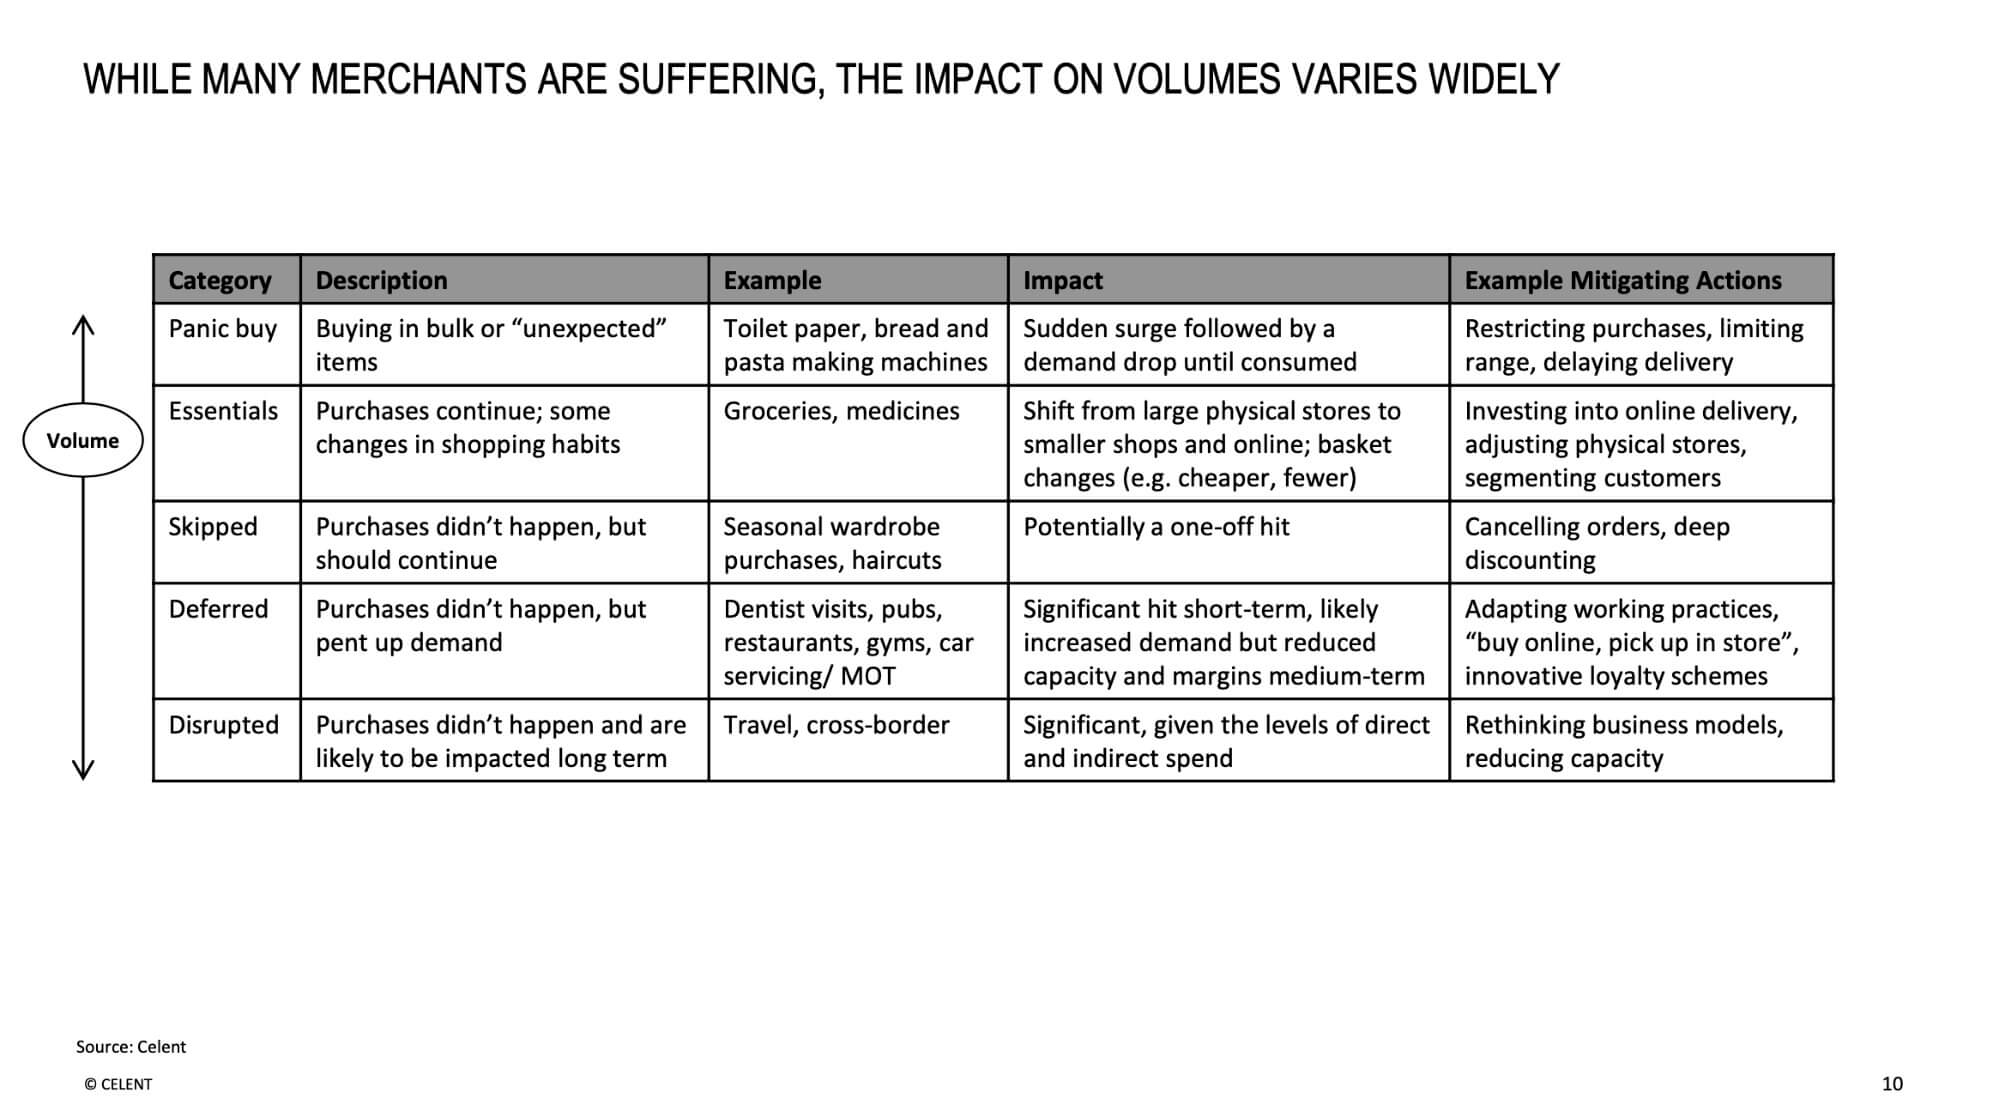 While many merchants are suffering, the impact on volumes varies widely